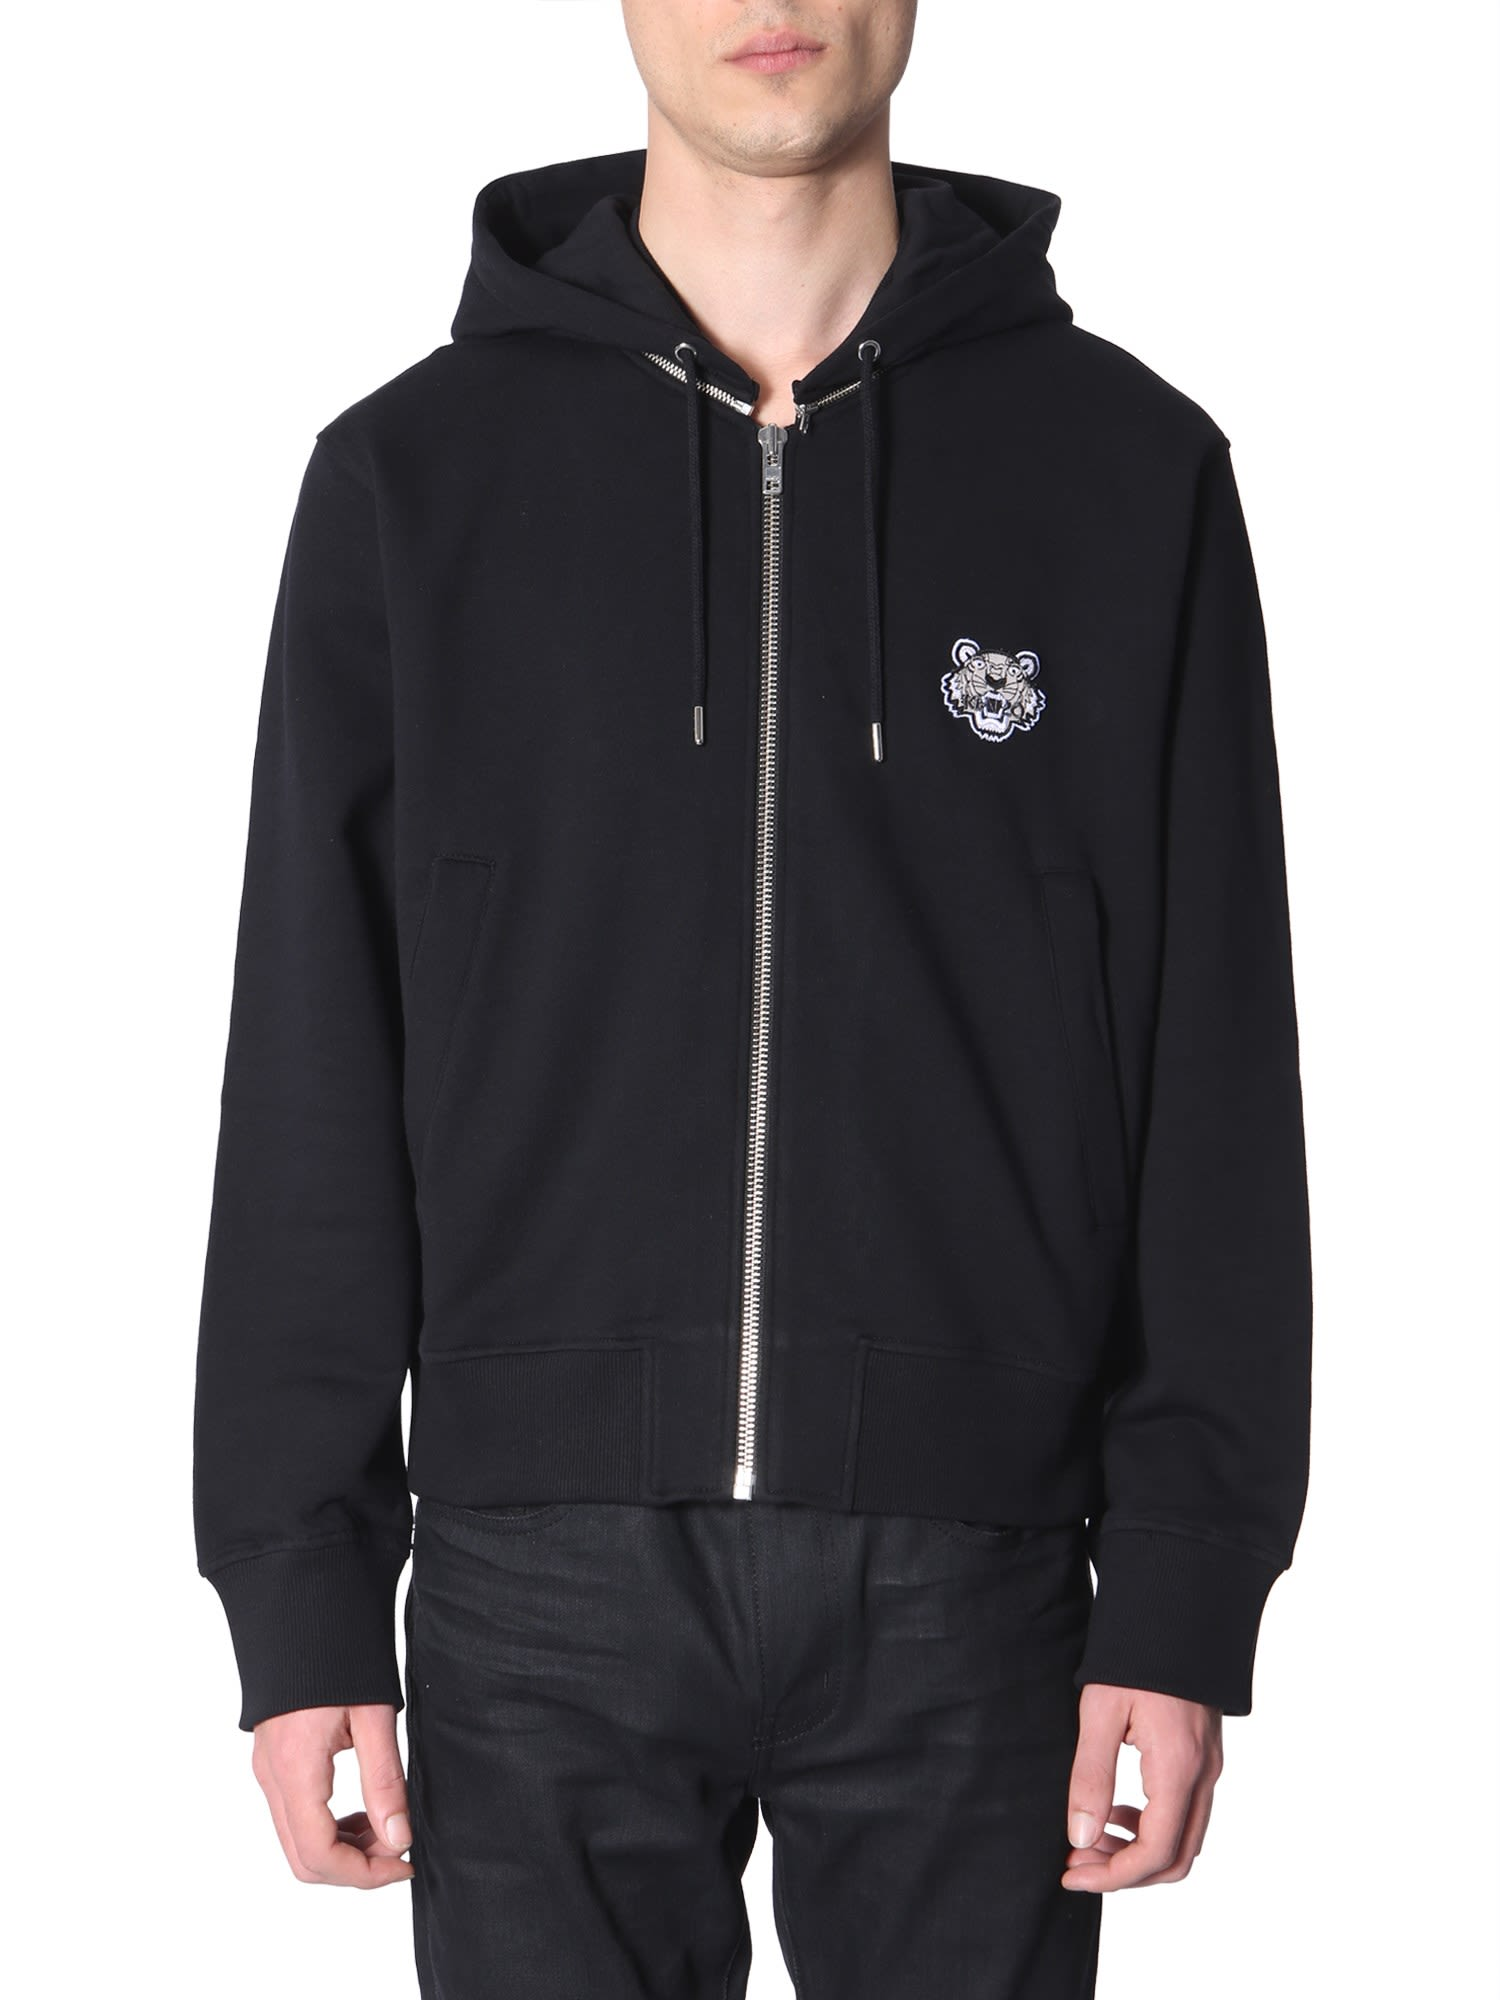 eebeb557d Kenzo Kenzo Zip-up Hooded Sweatshirt - NERO - 10848221 | italist